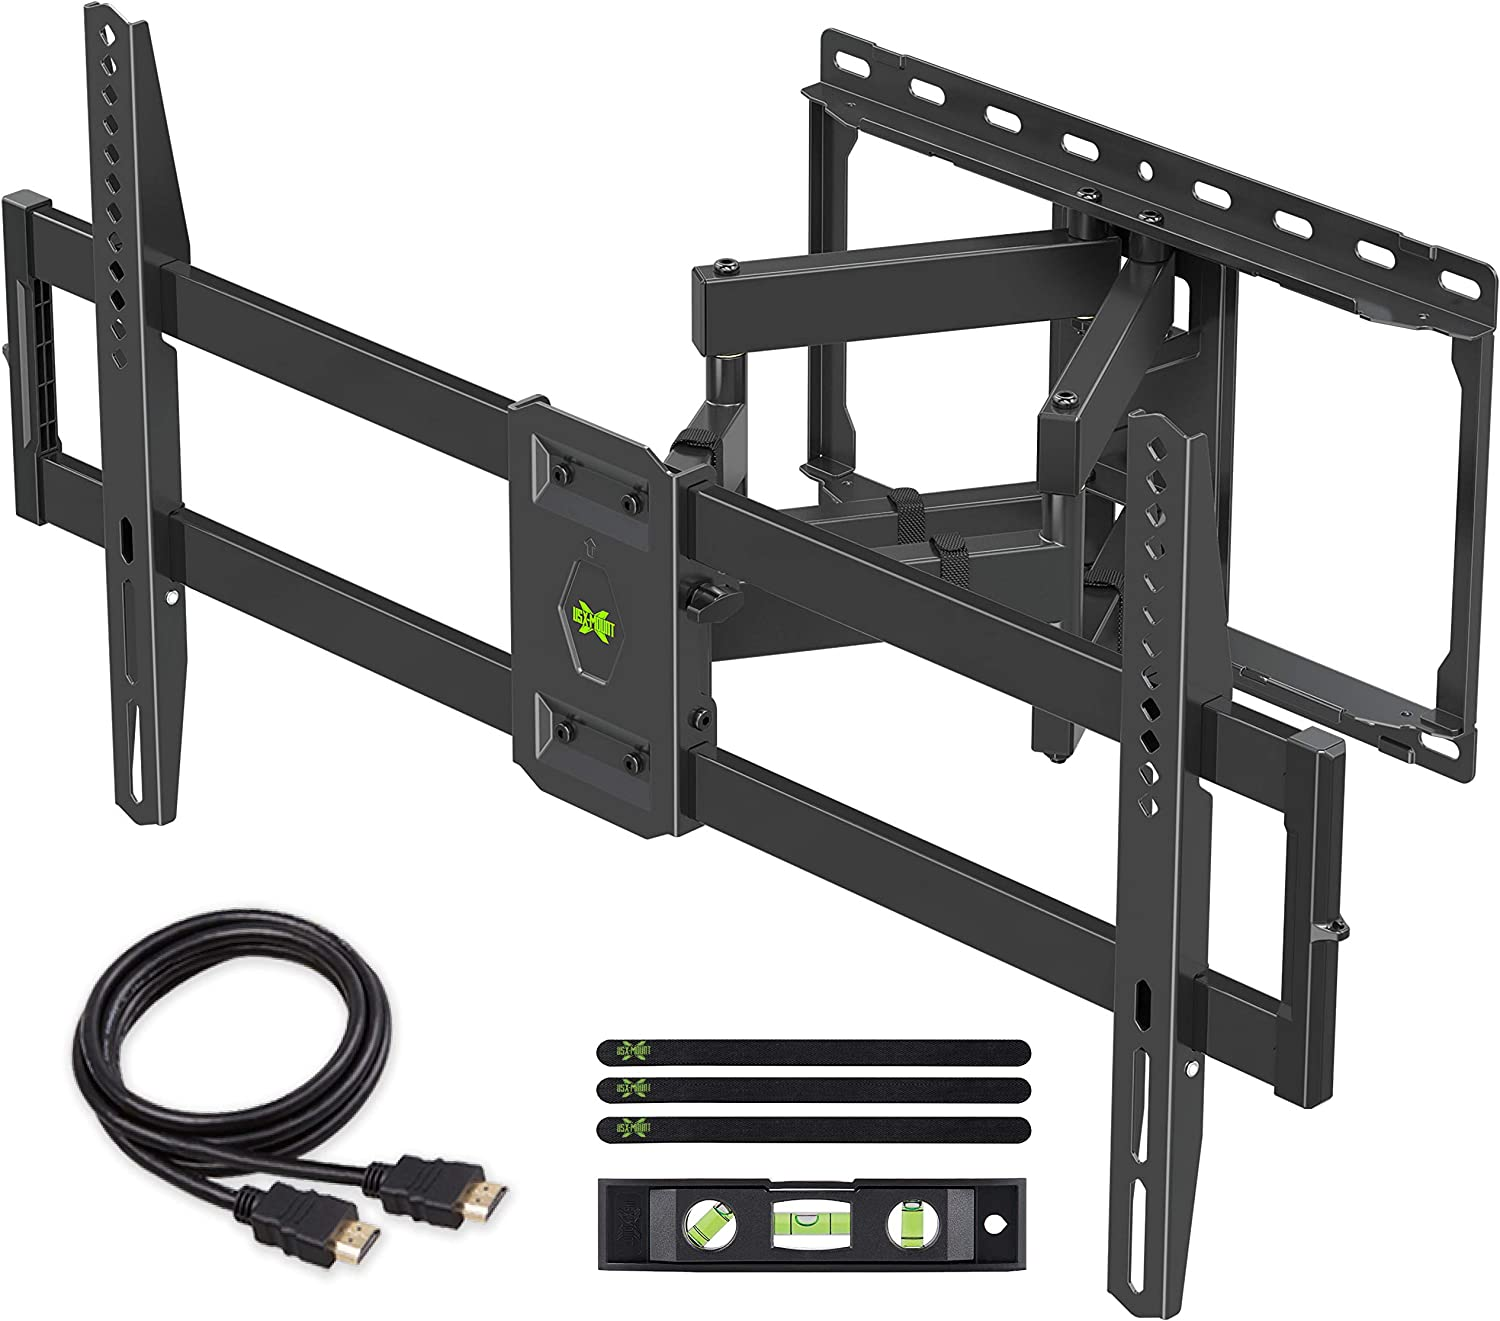 【Newest Version】 USX MOUNT Full Motion TV Wall Mount for Most 47-84 inch Flat Screen/LED/4K TVs, TV Mount Bracket Dual Swivel Articulating Tilt 6 Arms with Max VESA 600x400mm and Holds up to 132lbs 810ygf79GrL